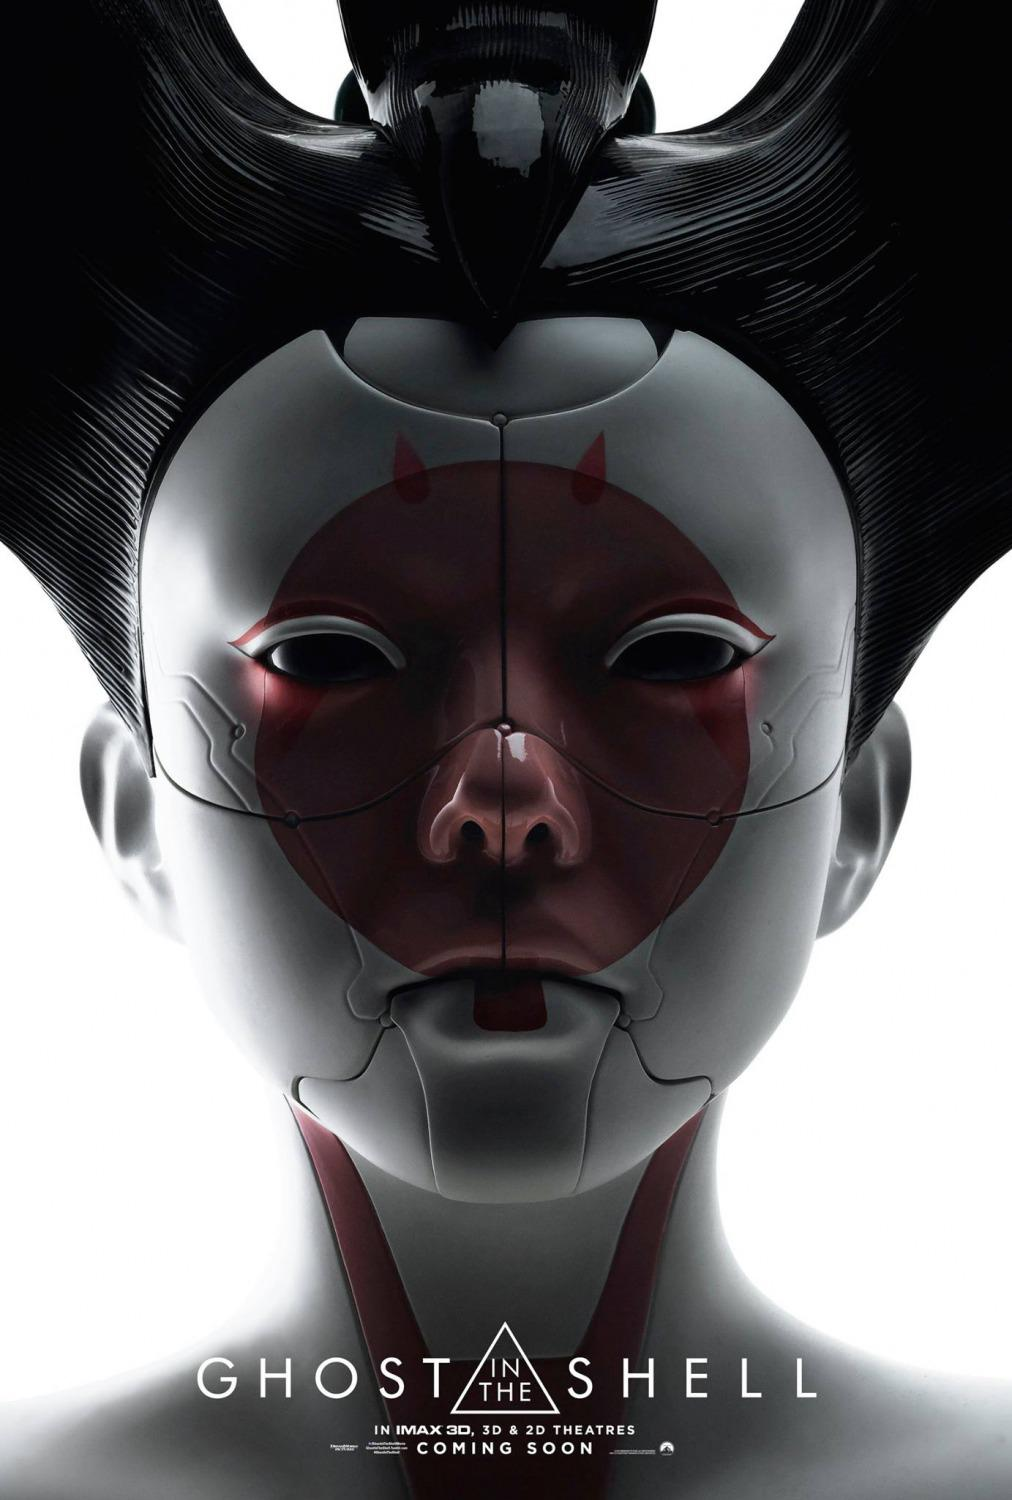 Ghost in the Shell (live action film 2017) poster - geisha